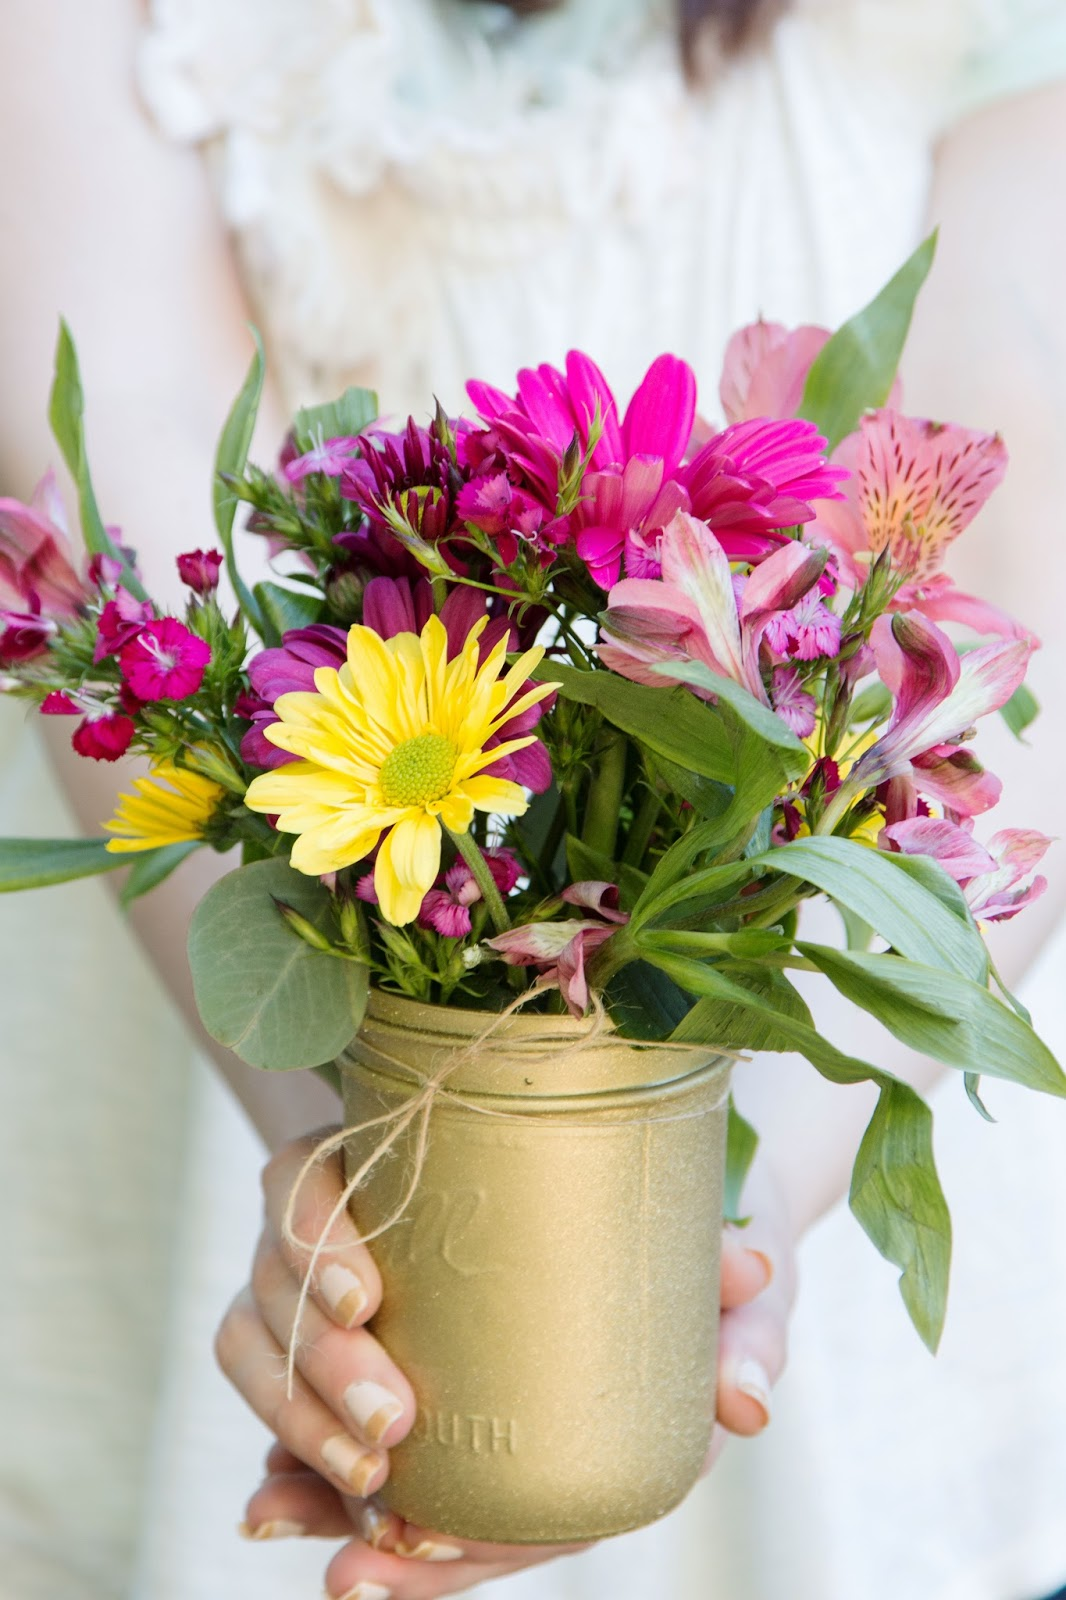 DIY Flower Arrangments and Gold Glitter Vases @craftsavvy @createoften #craftwarehouse #diy #vases #flowers #glamping